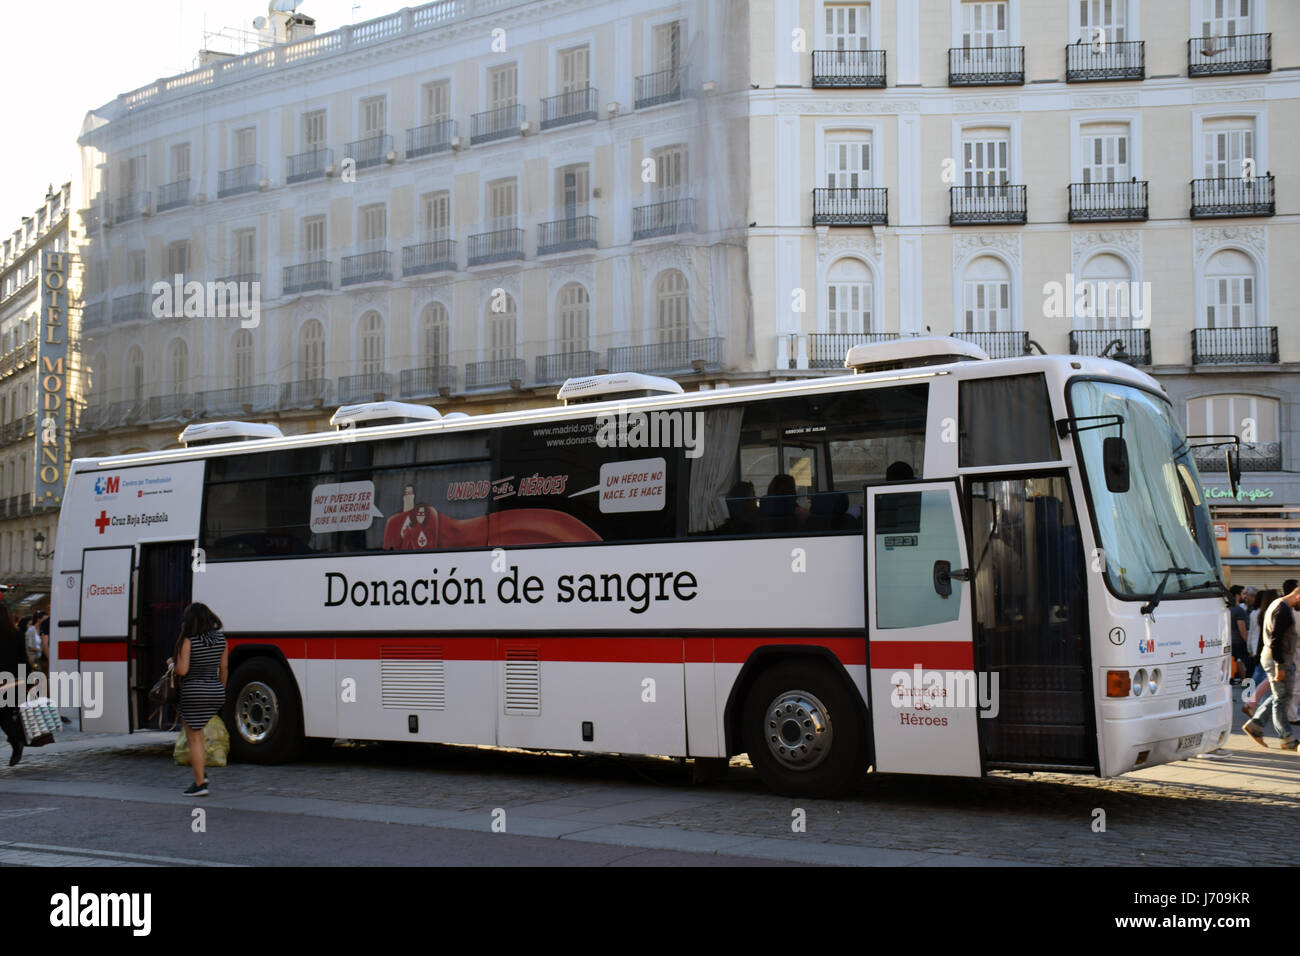 Blood donation bus, Plaza de la Puerta del Sol, Madrid, Spain - Stock Image